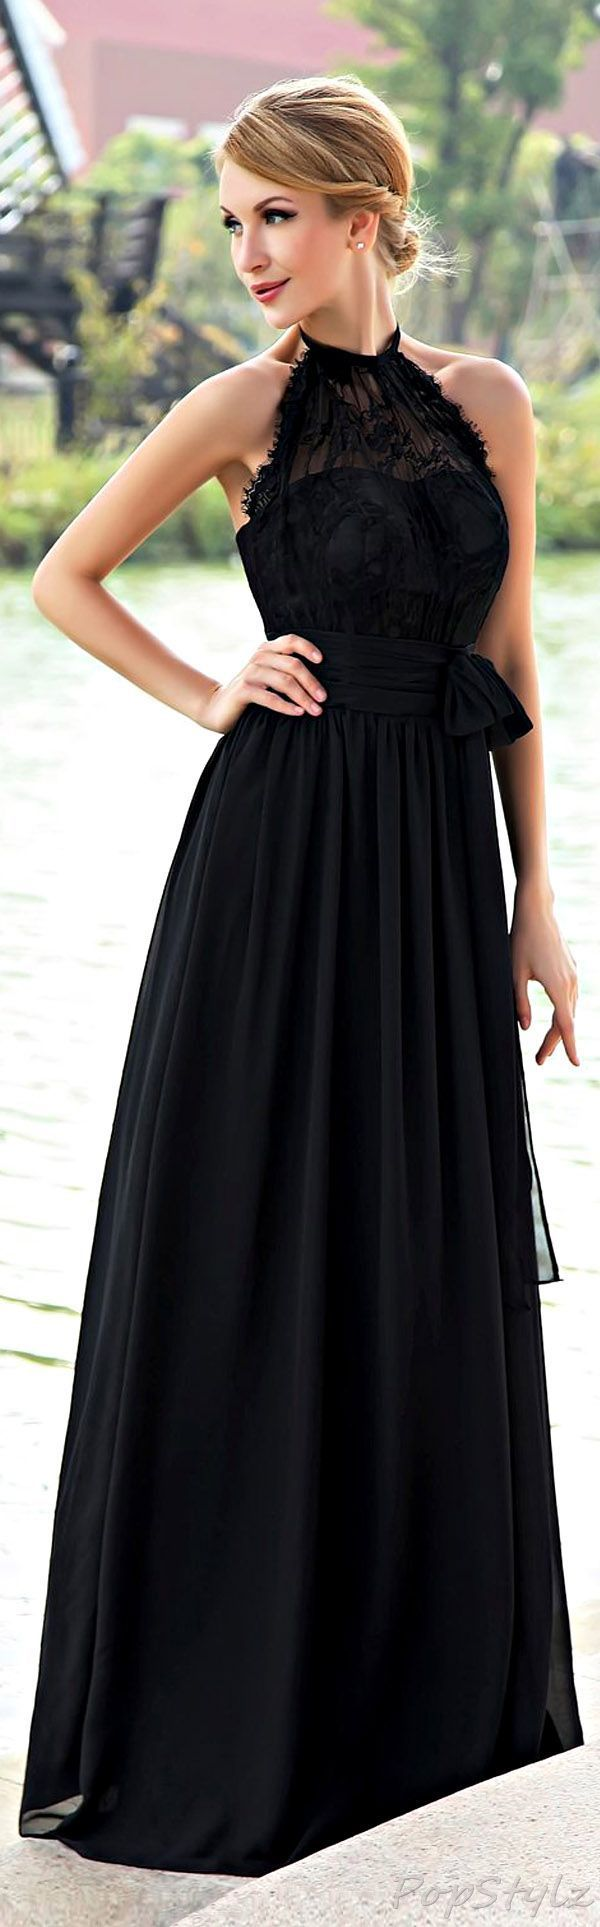 Beautiful Black Wedding Dresses - Not sure if I wanna quite go the black wedding dress route, but love this style/shape/cut